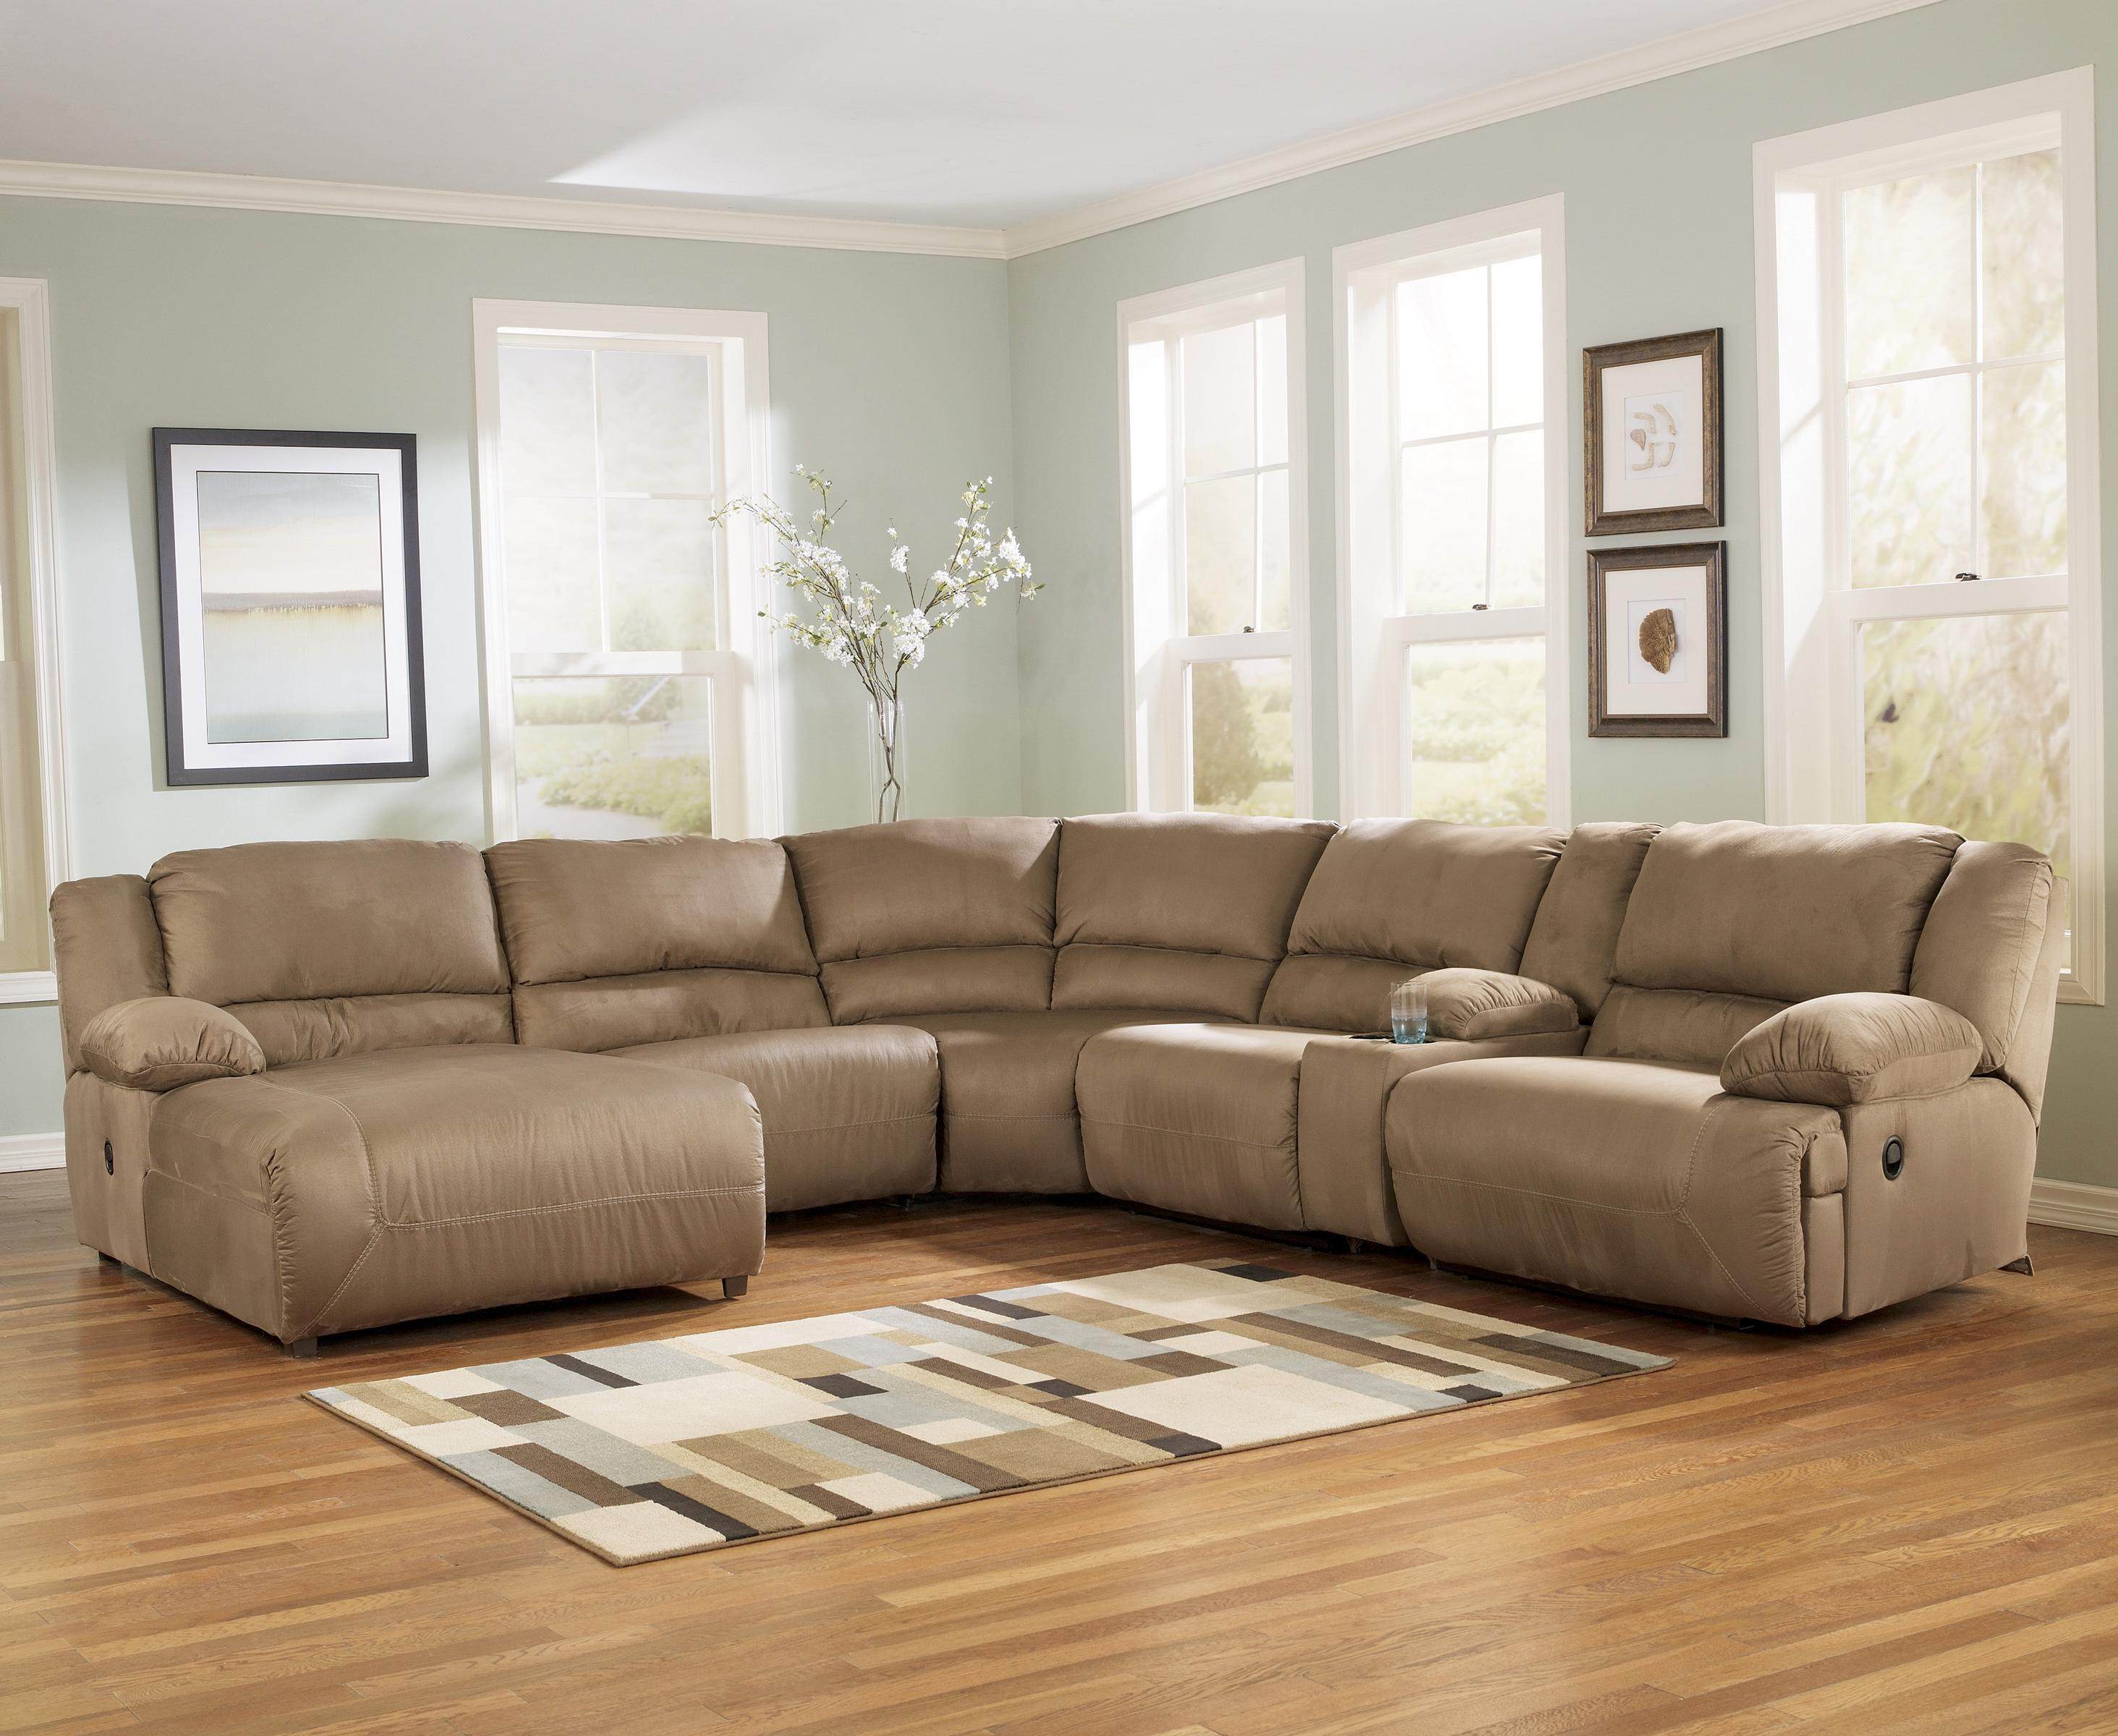 6 Piece Motion Sectional with Left Chaise and Console by Signature